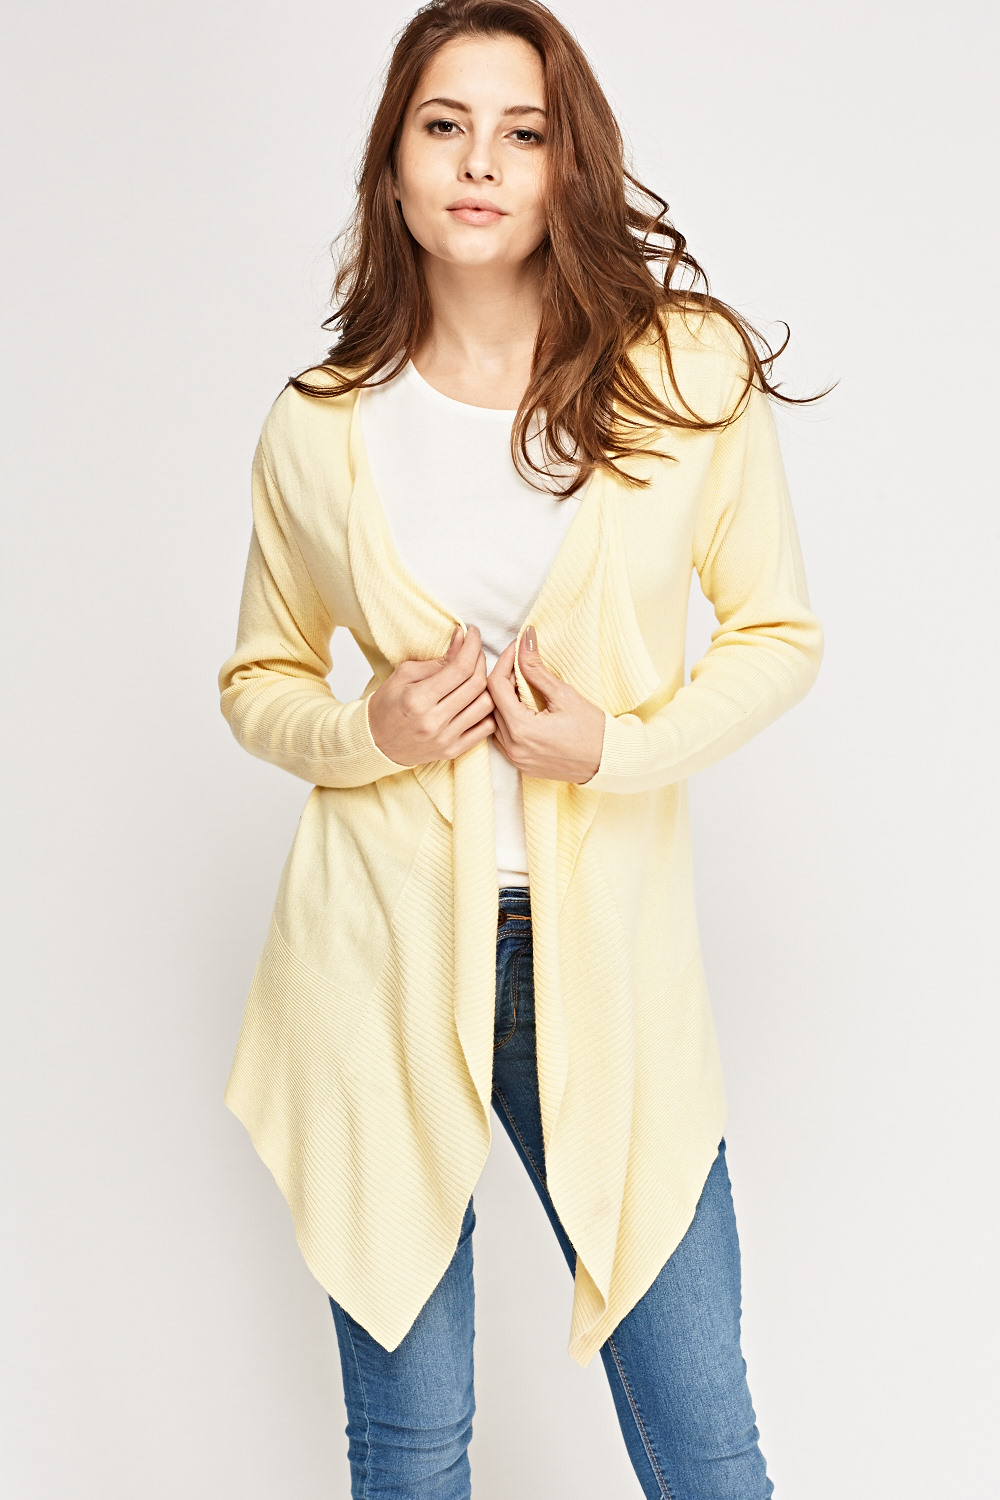 Ribbed Trim Waterfall Cardigan - Yellow or Mint - Just £5